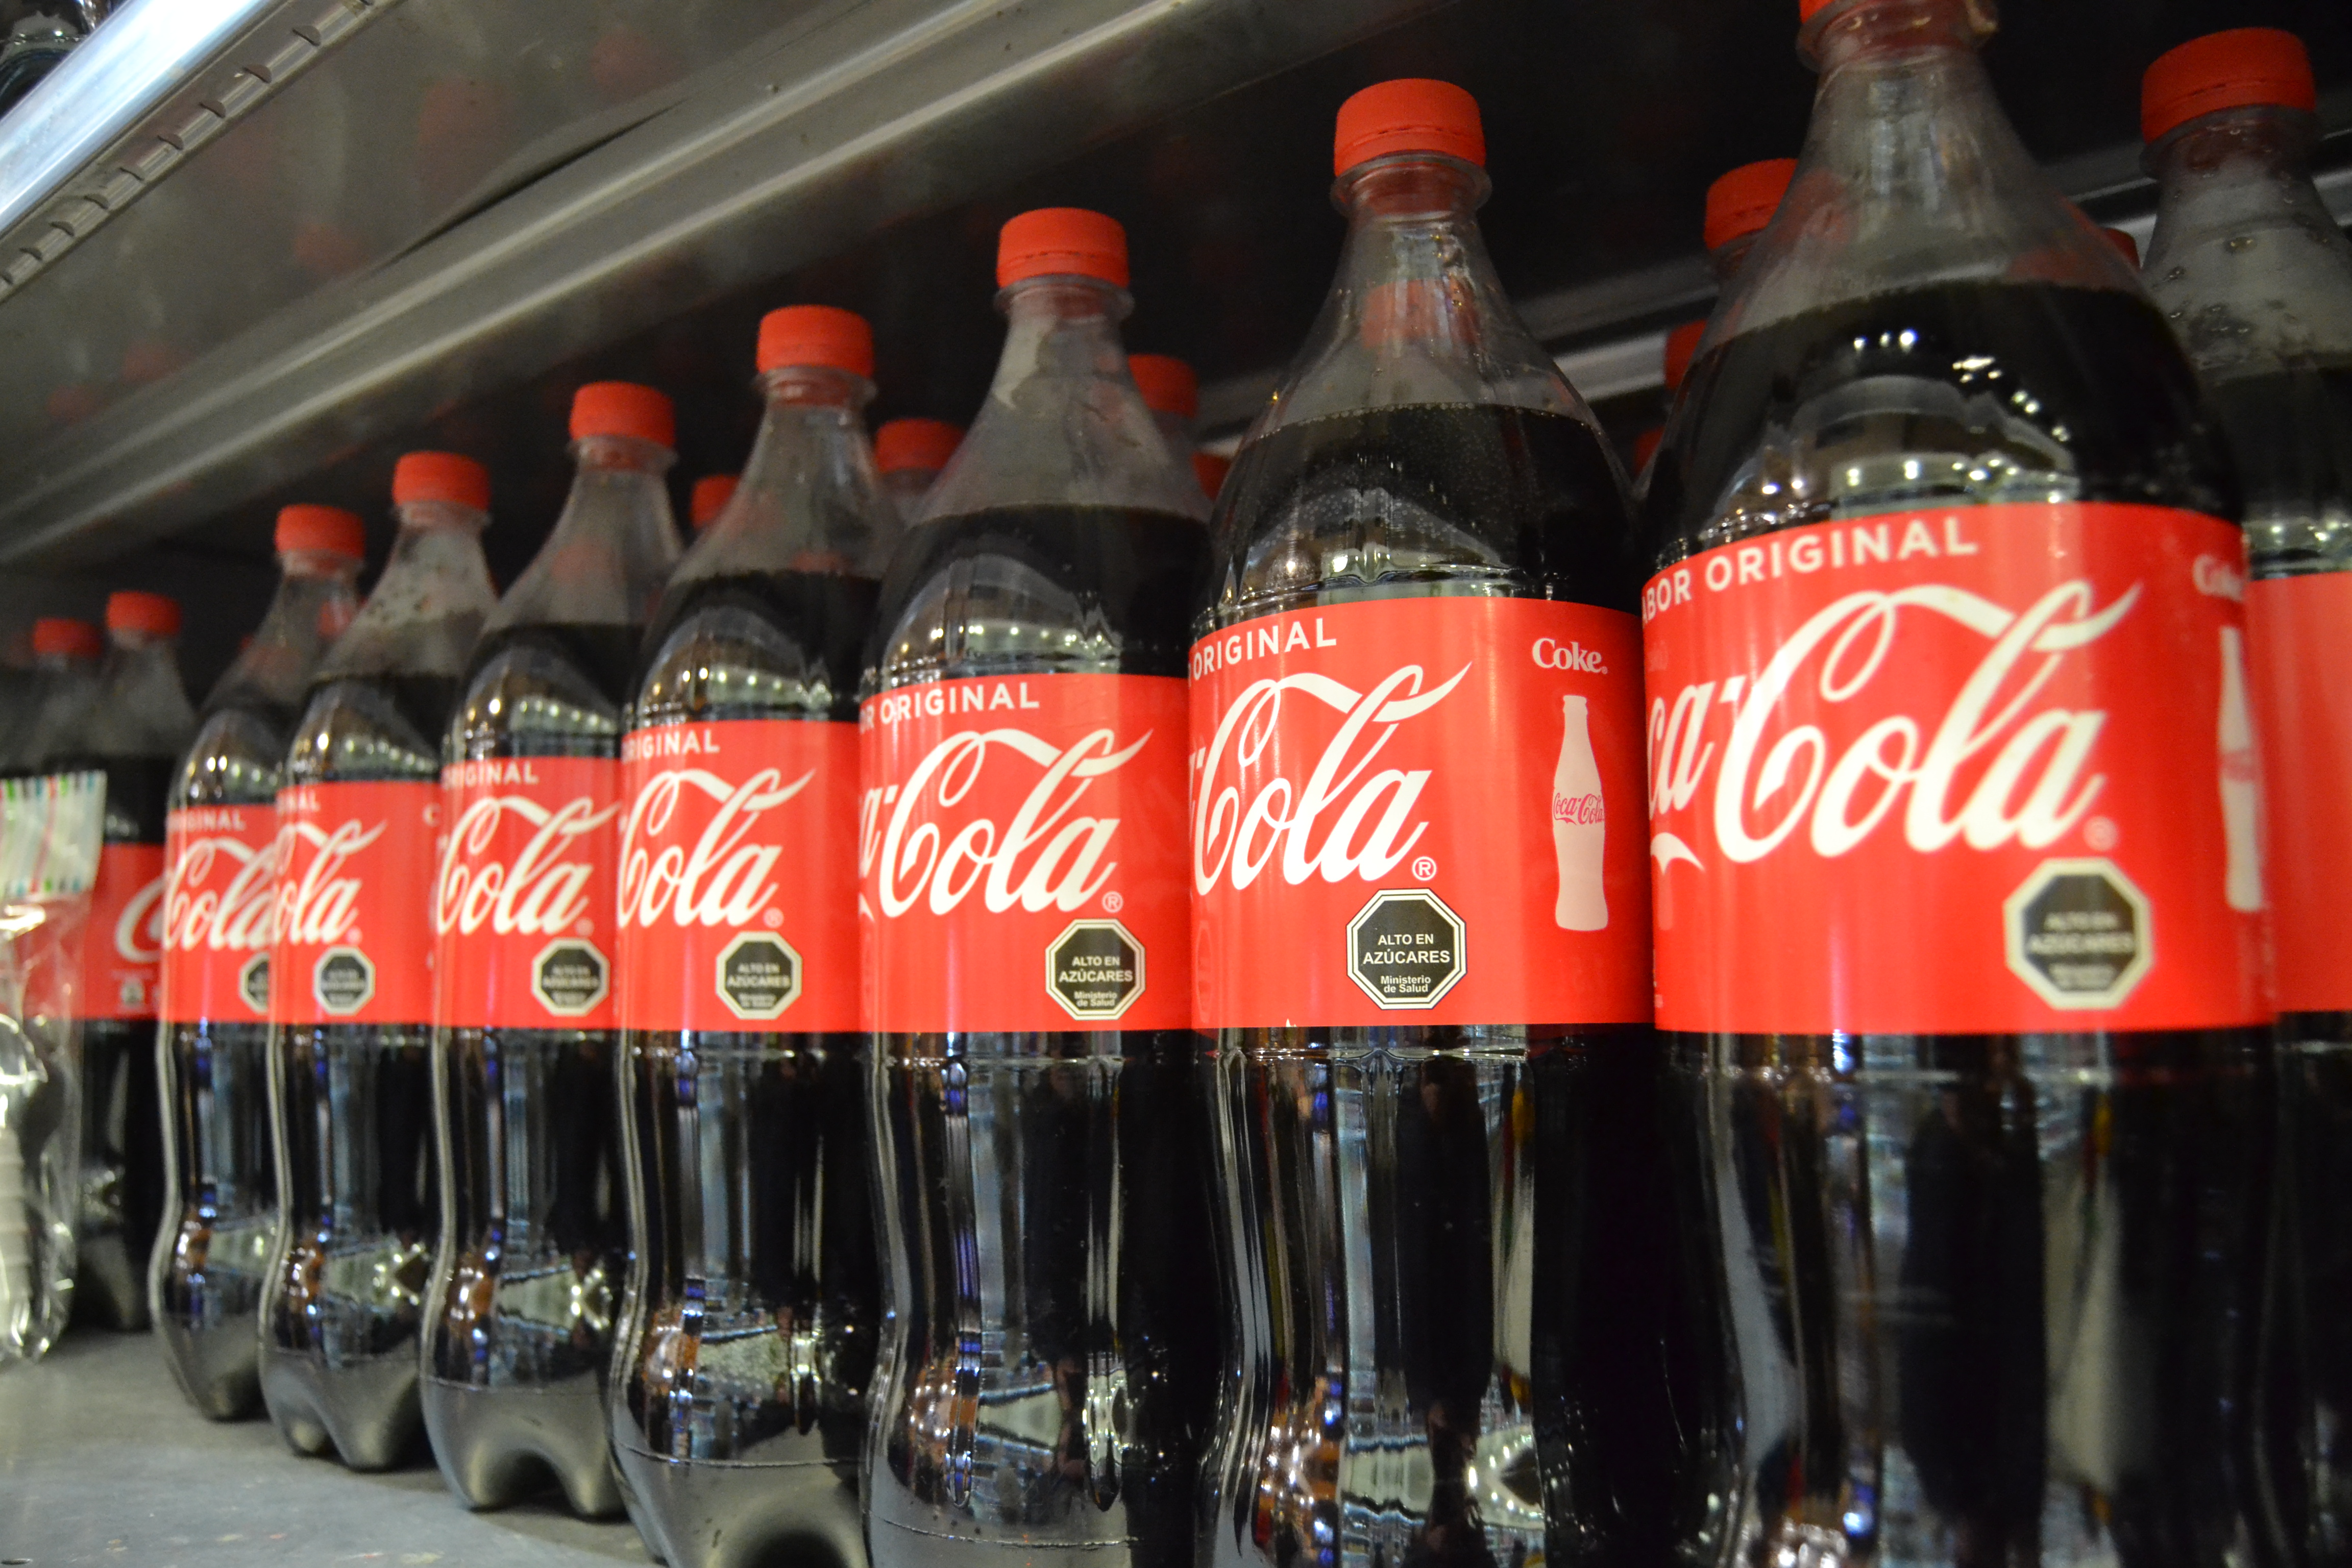 Coca Cola bottles with black labels indicating high sugar content.